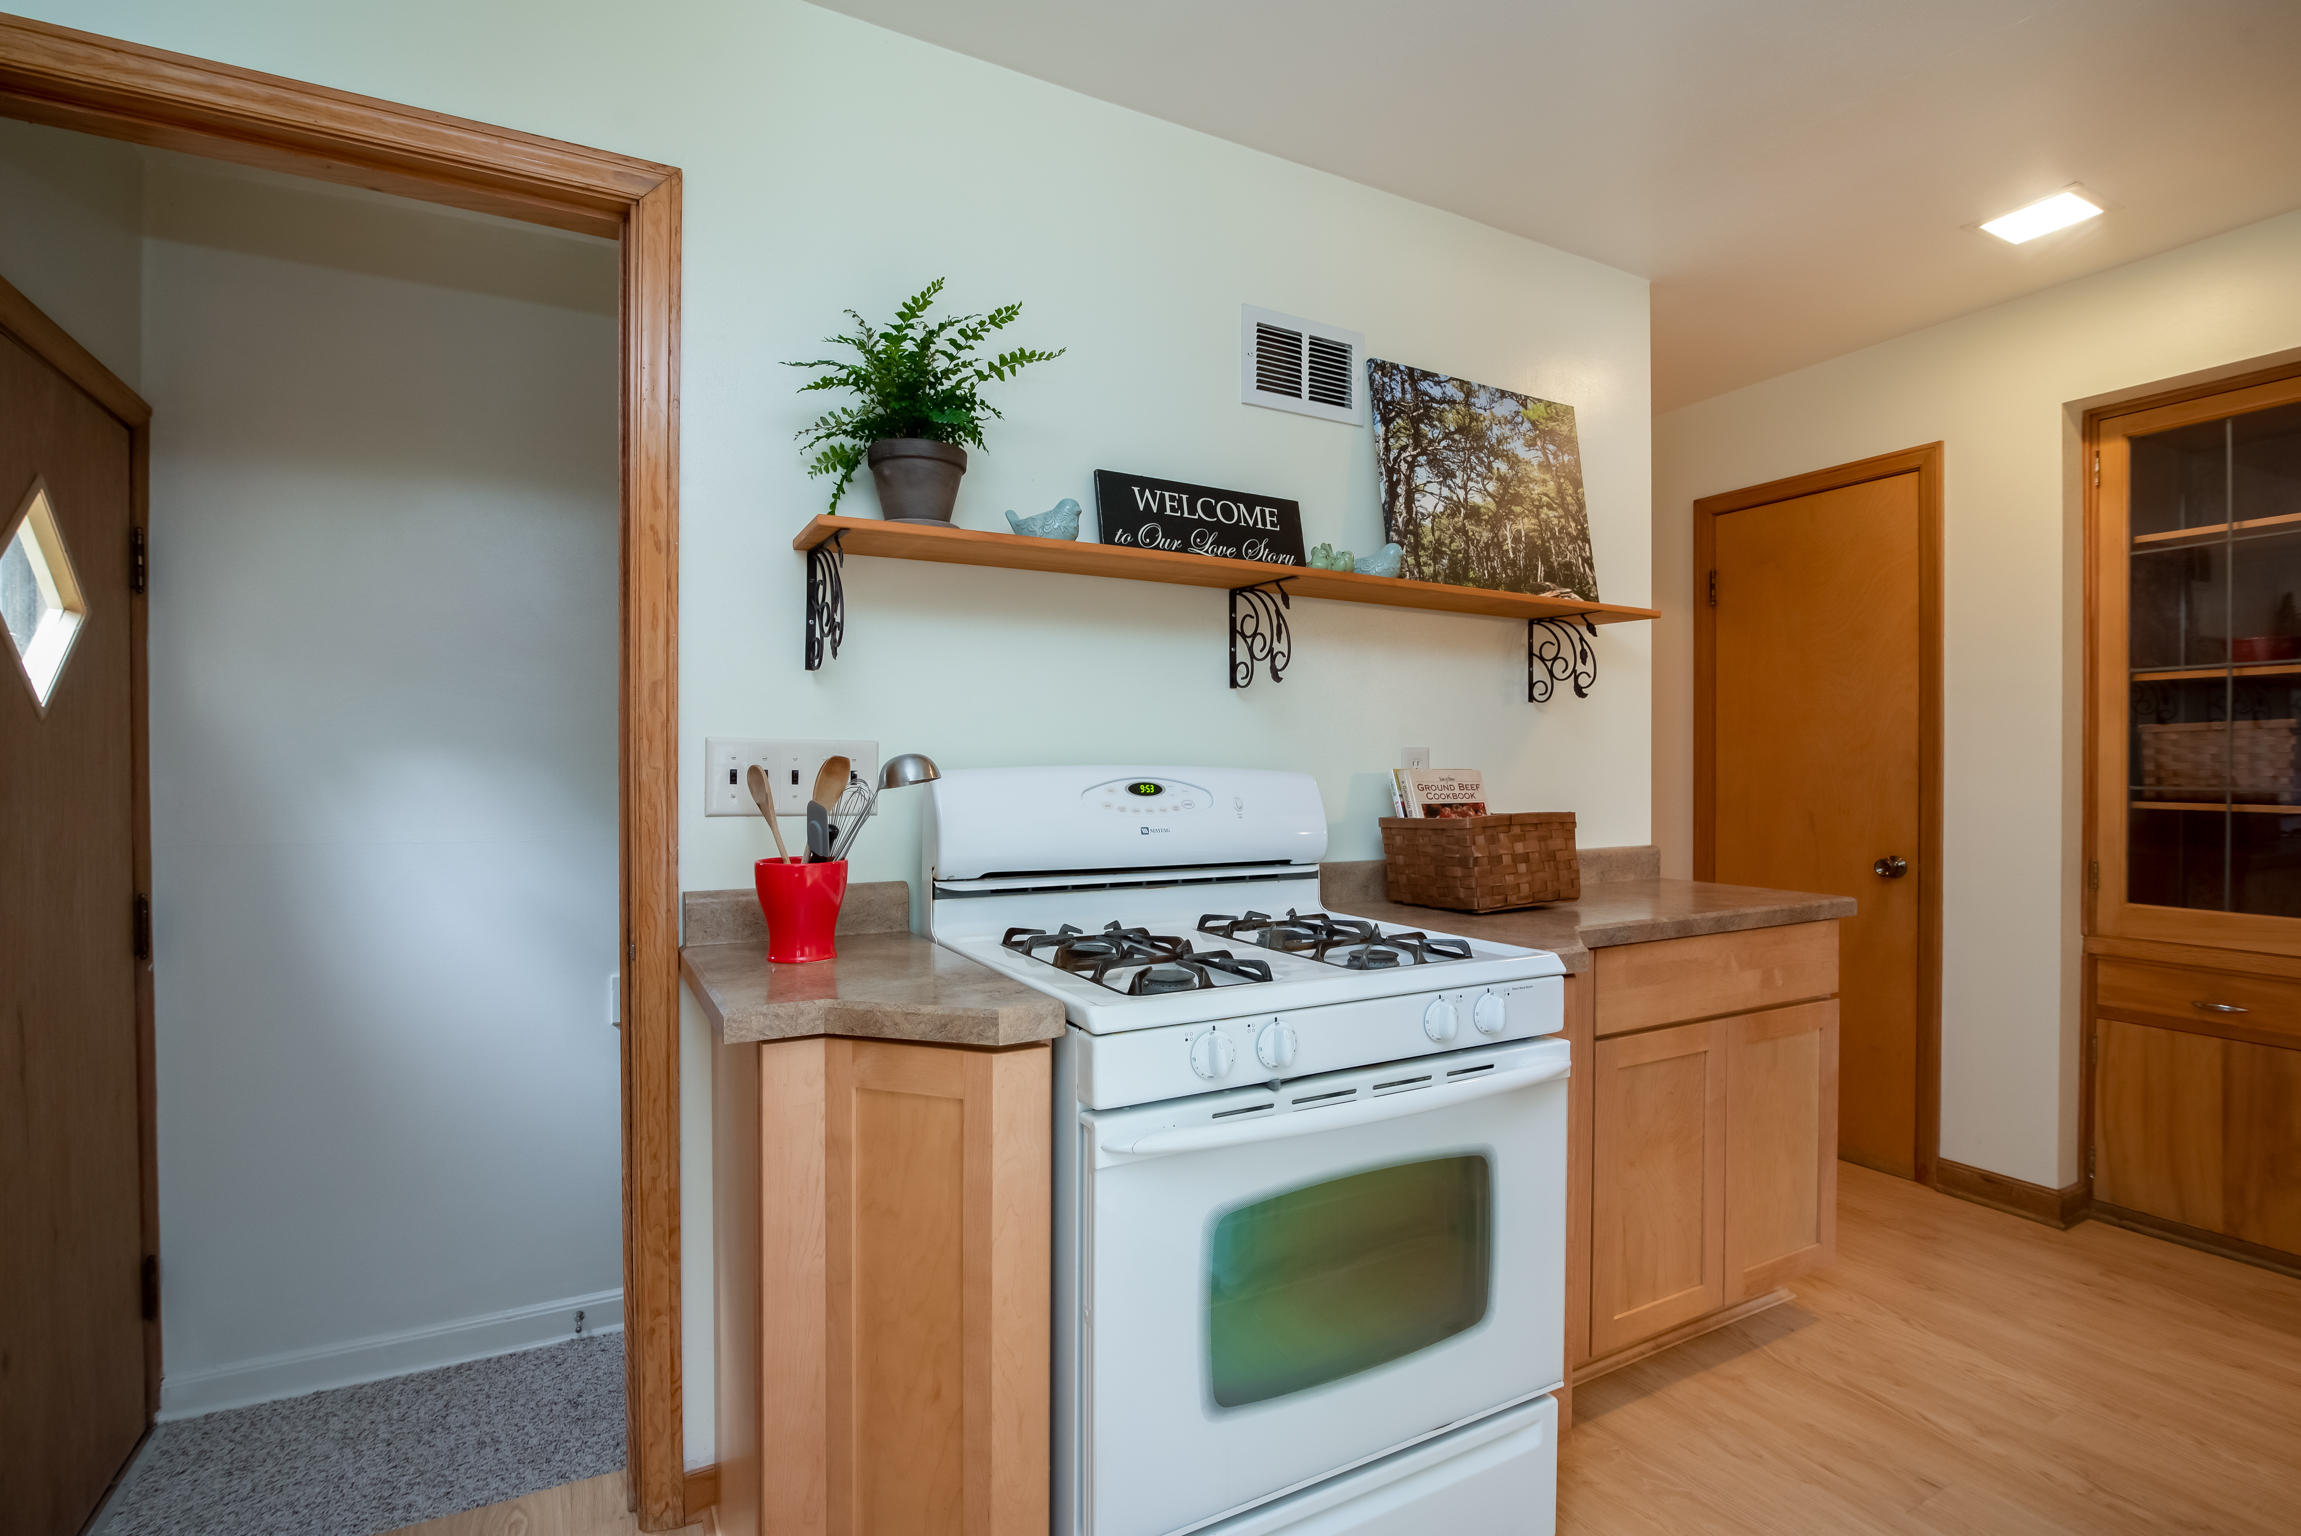 706 N 117th St, Wauwatosa, WI 53226, MLS # 1601723   Keefe Real Estate